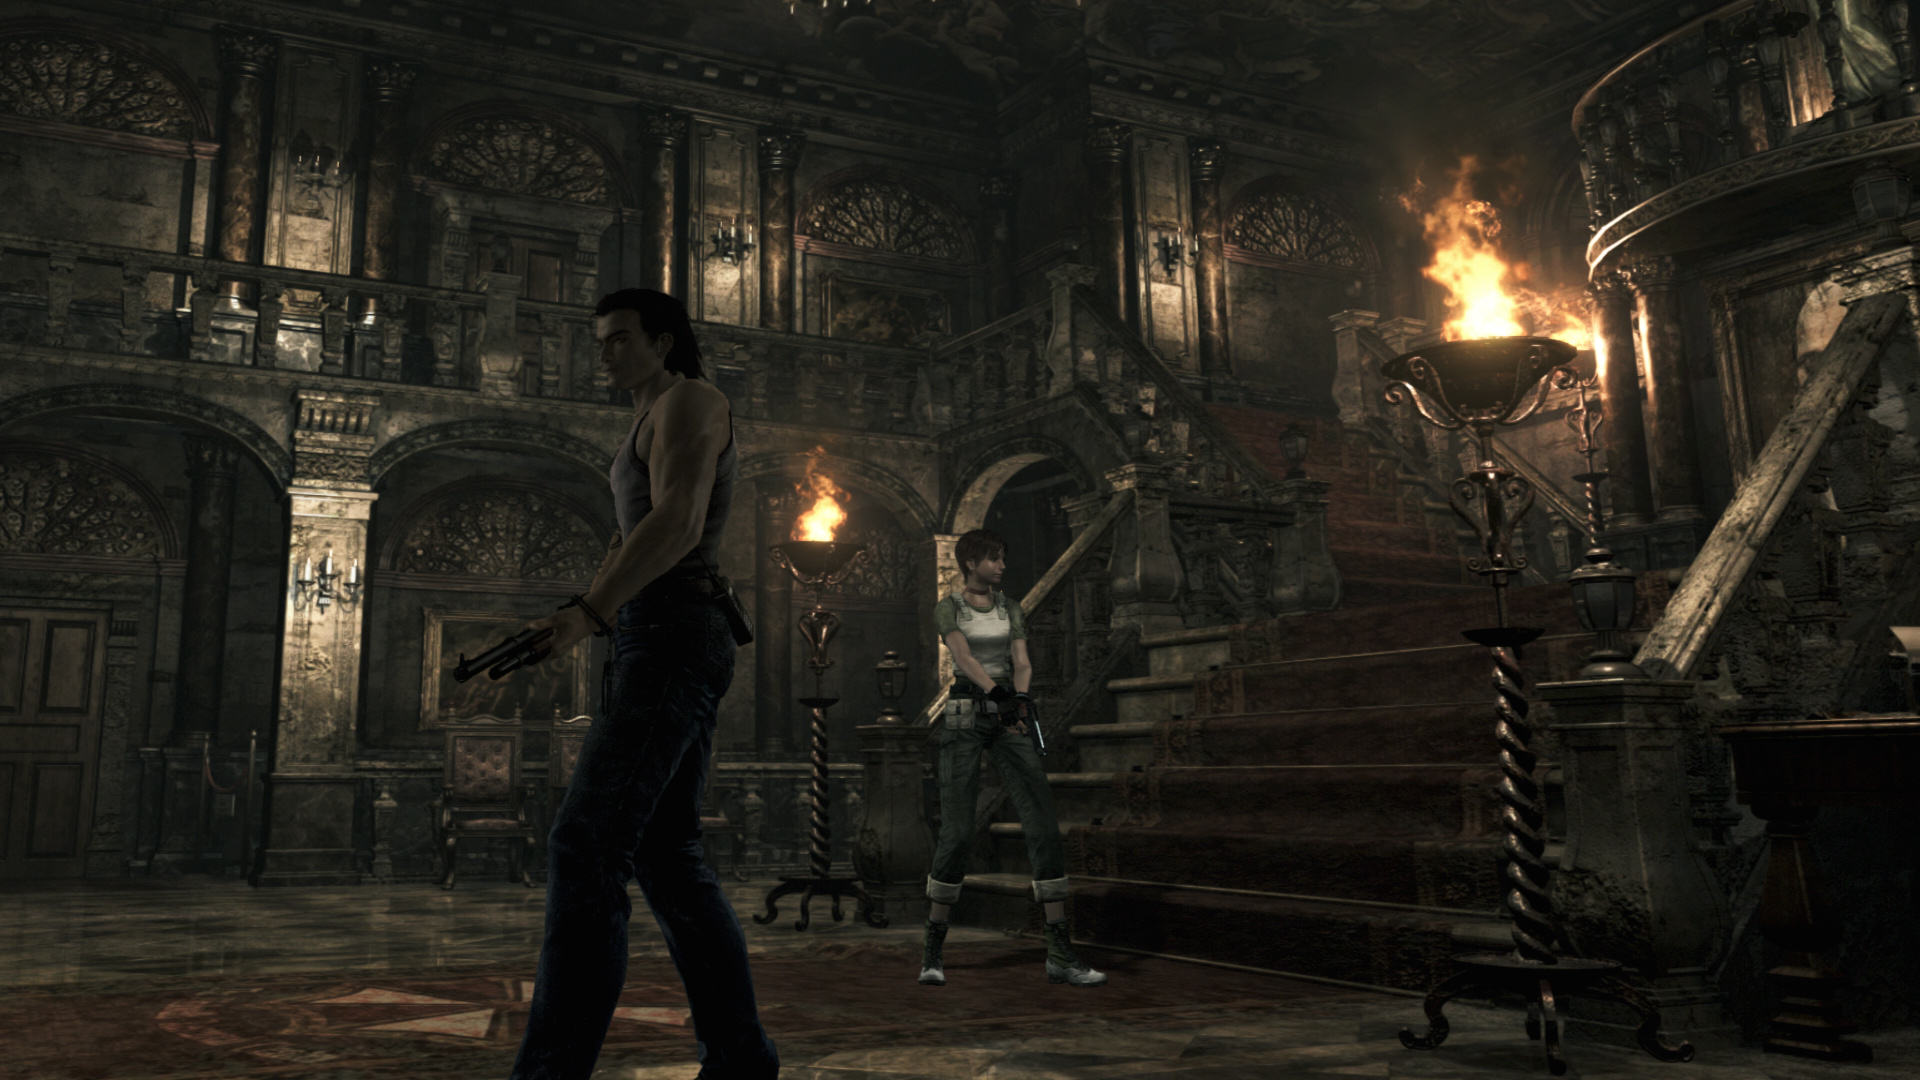 Resident Evil 0 HD Is A Welcome Reminder Of The Series Roots RE0 Review 0006 1452532990